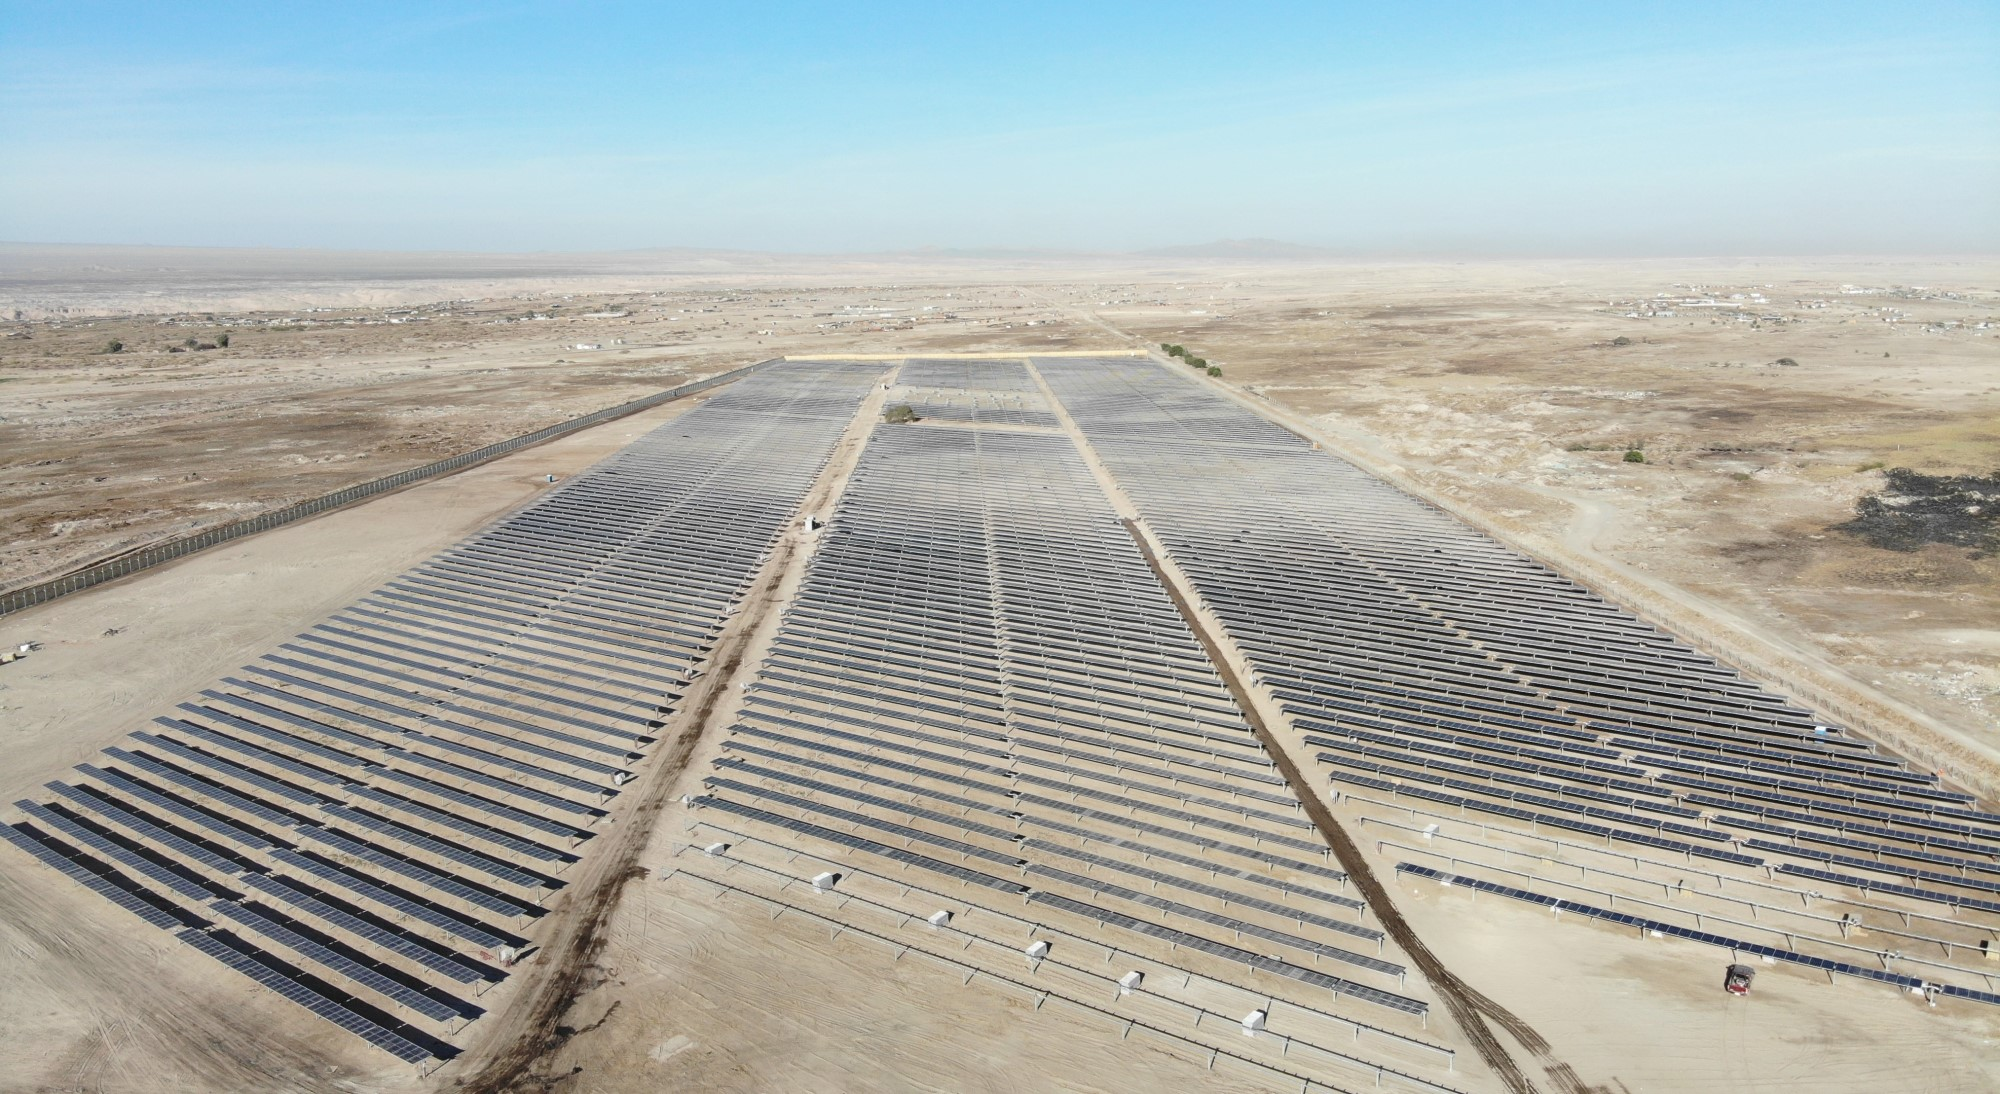 Yinson And Verano Collaborate to Progress 800 MW Pipeline of Solar Projects in Latin America